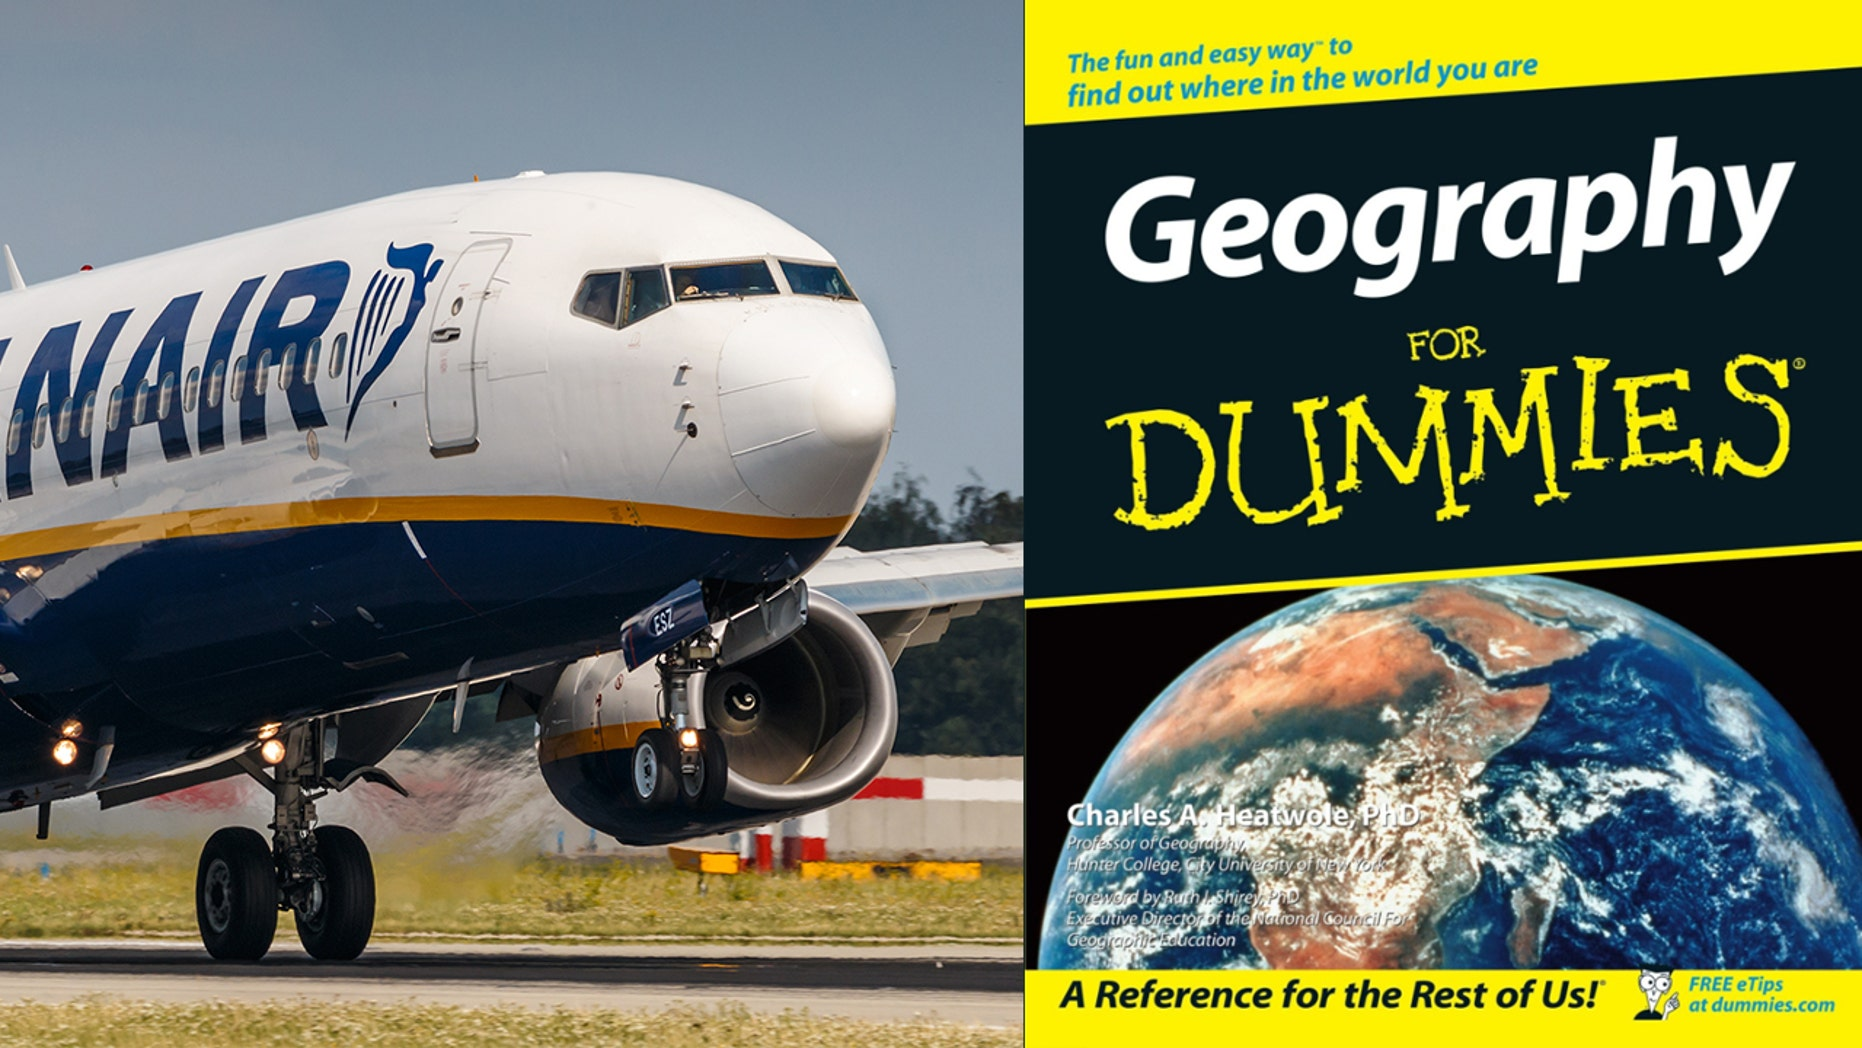 Ryanair is taking a bit of flak for attempting to troll British Airways over BA's mistaken flight plan.<br>